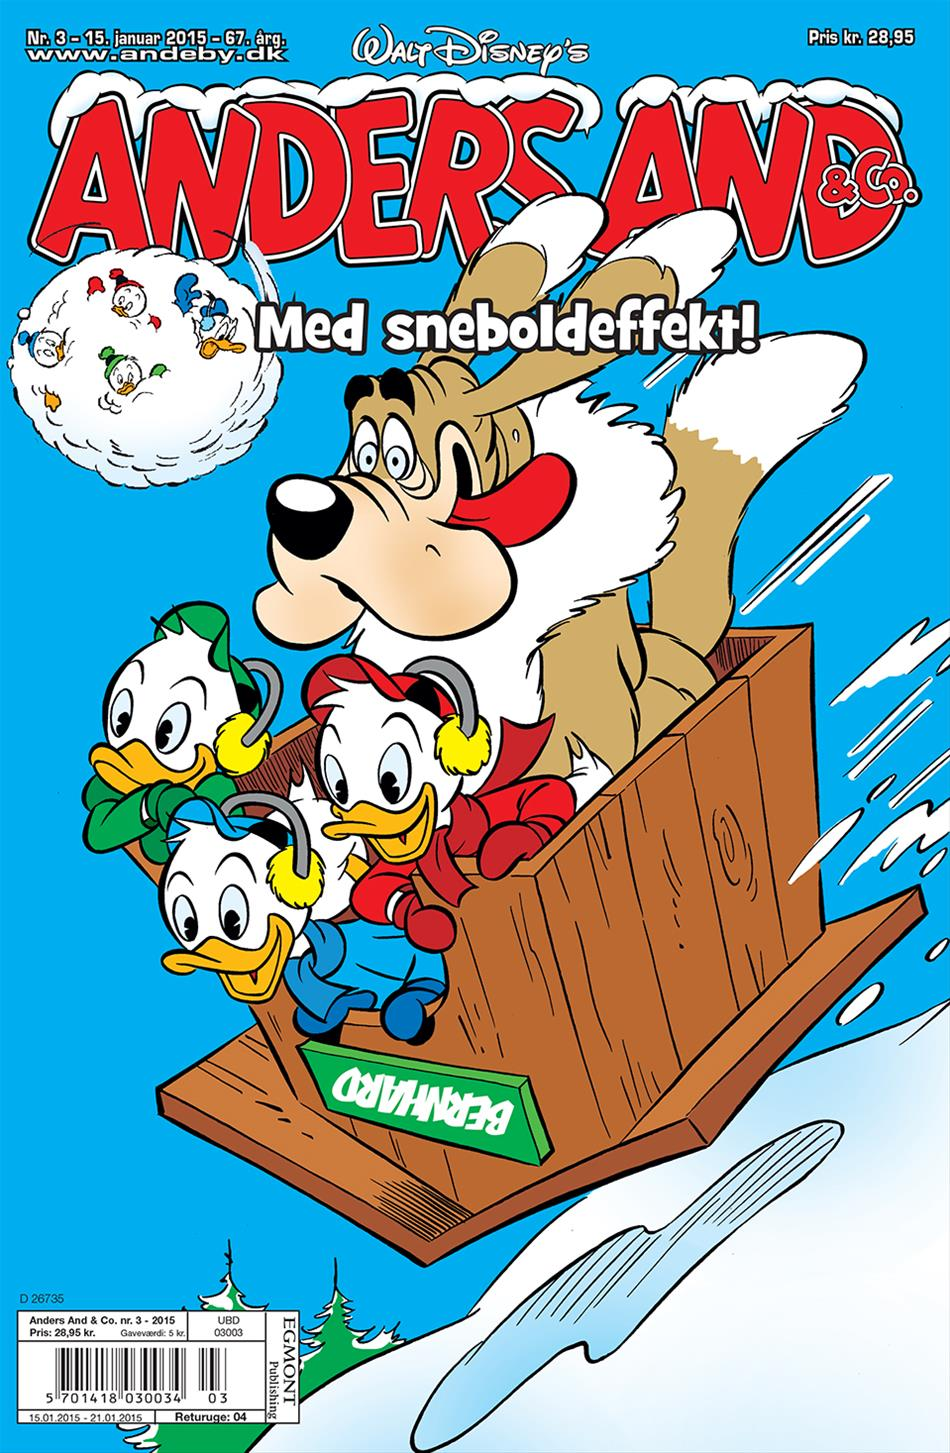 Anders And & Co. nr. 3 - 2015